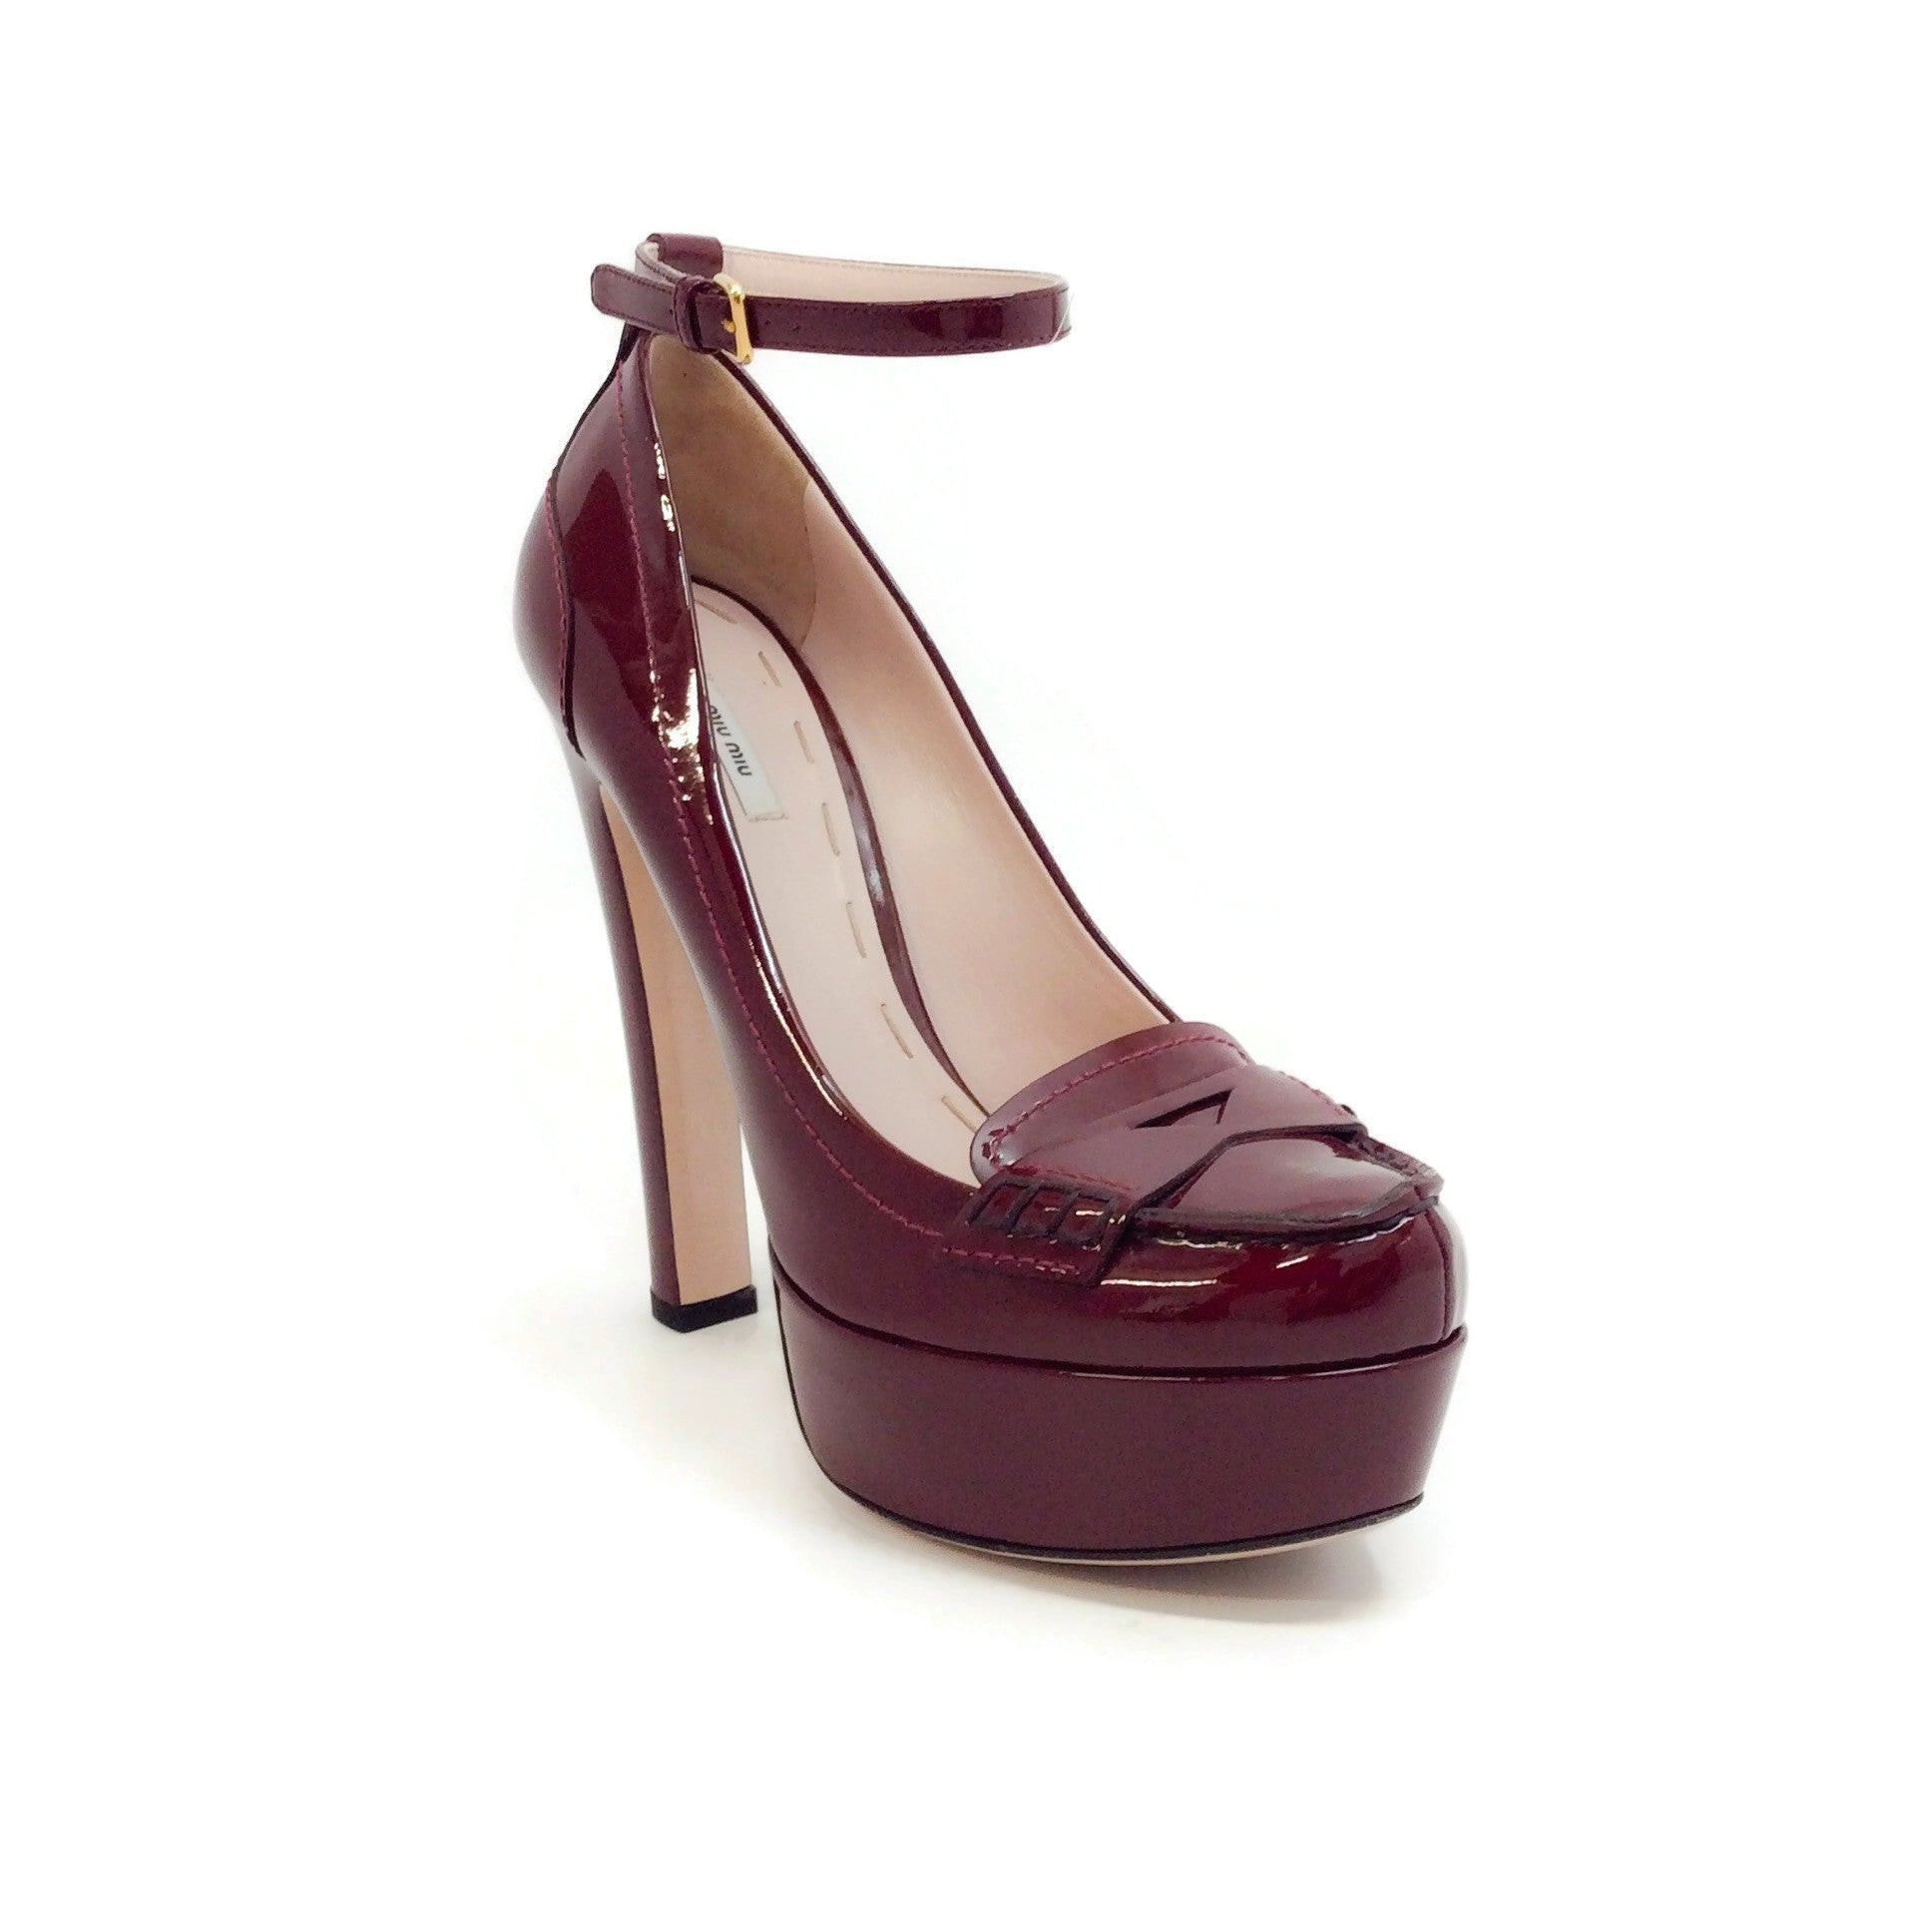 Miu Miu Oxblood Platform Loafer Pumps